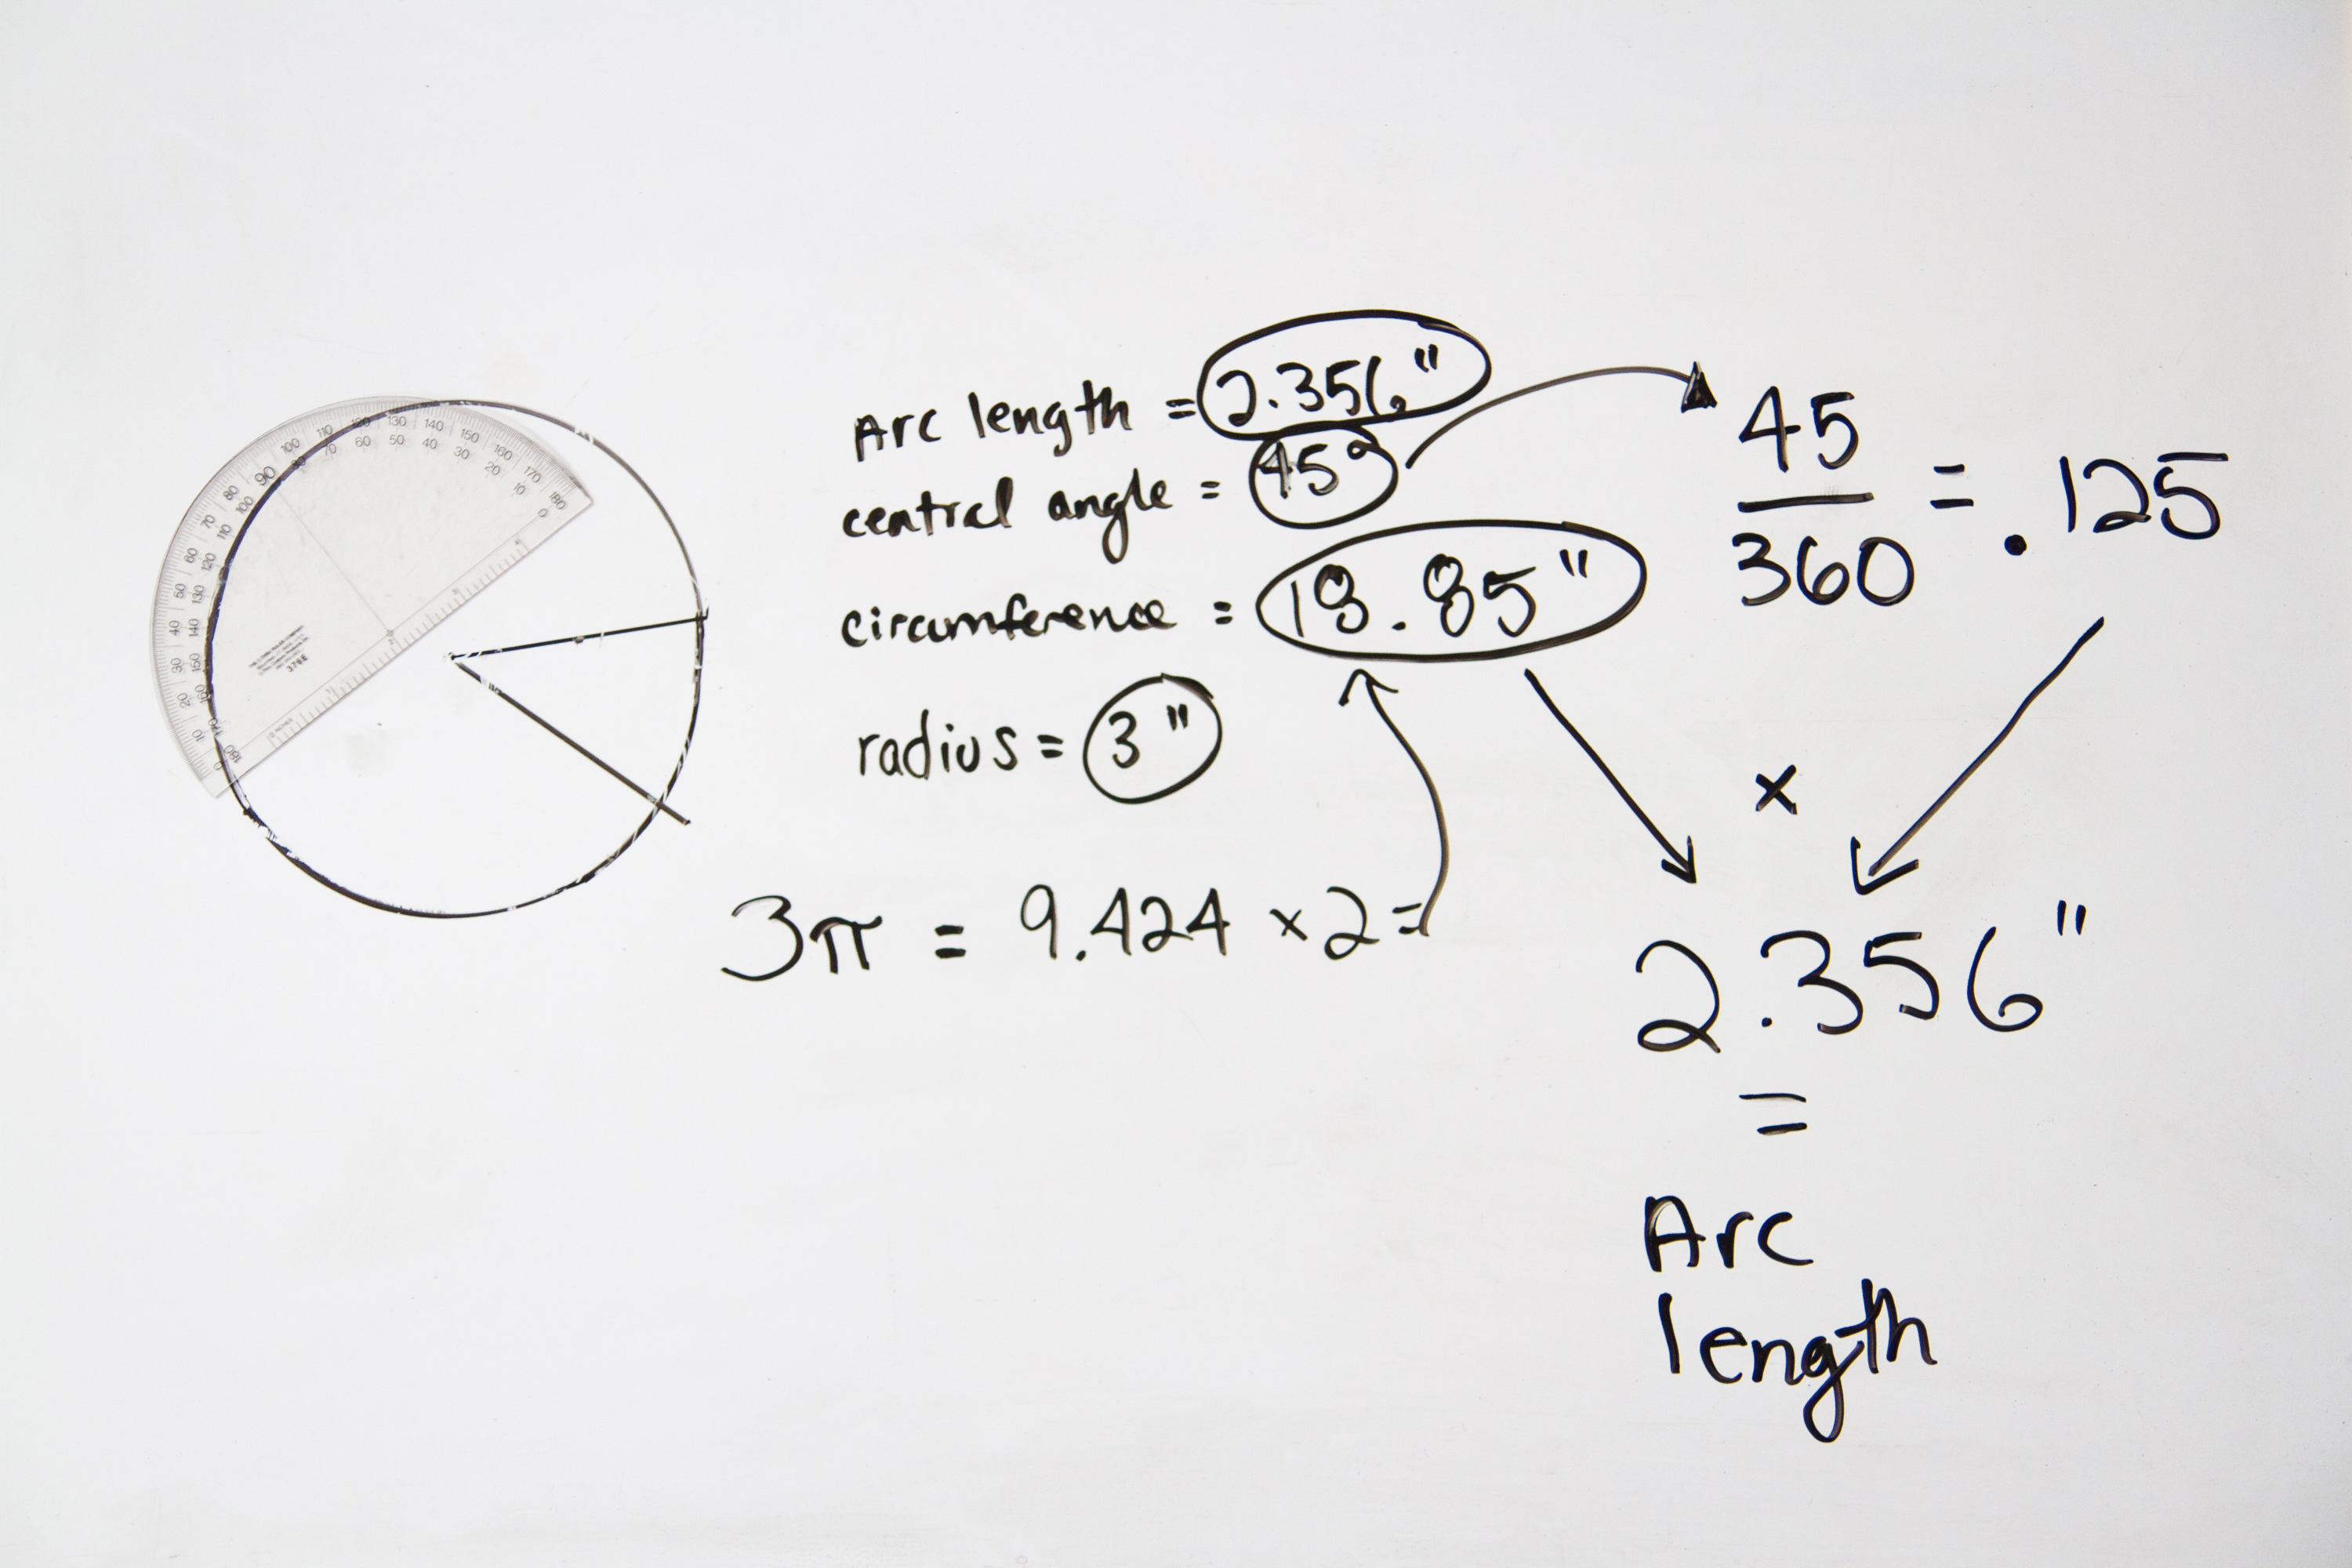 How To Calculate The Arc Length Central Angle And